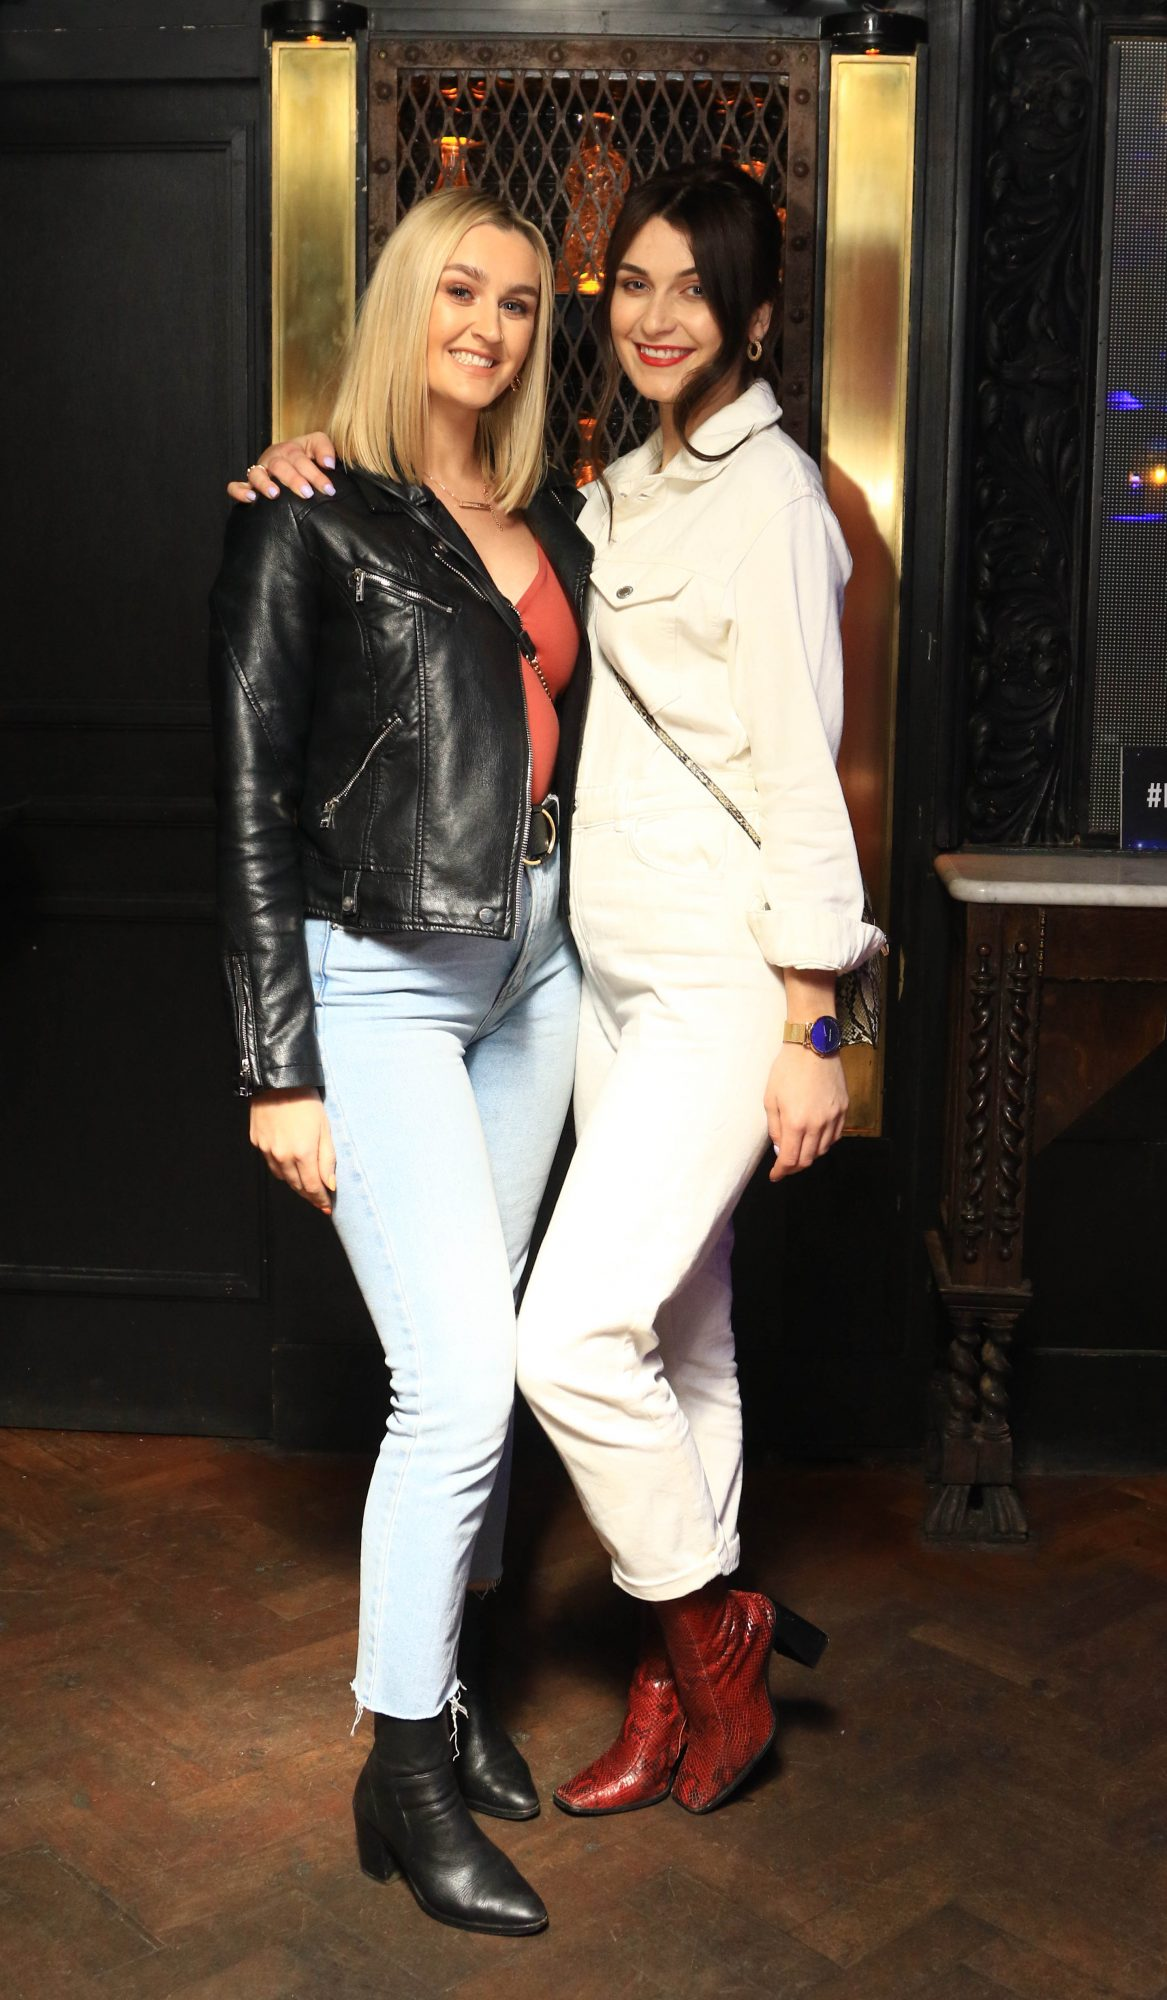 Pictured is Rachel Kearney and Ashalana Downes at Everleigh, the award winning club, bar and venue situated in The Dean Hotel, Harcourt Street for the official launch of the Summer Series at Everleigh with CÎROC Vodka. The Summer Series at Everleigh will see LIVE music and performances from Ireland's top entertainers throughout the summer, along with showcasing the latest CÎROC Vodka bottle experiences and bespoke cocktail menu.